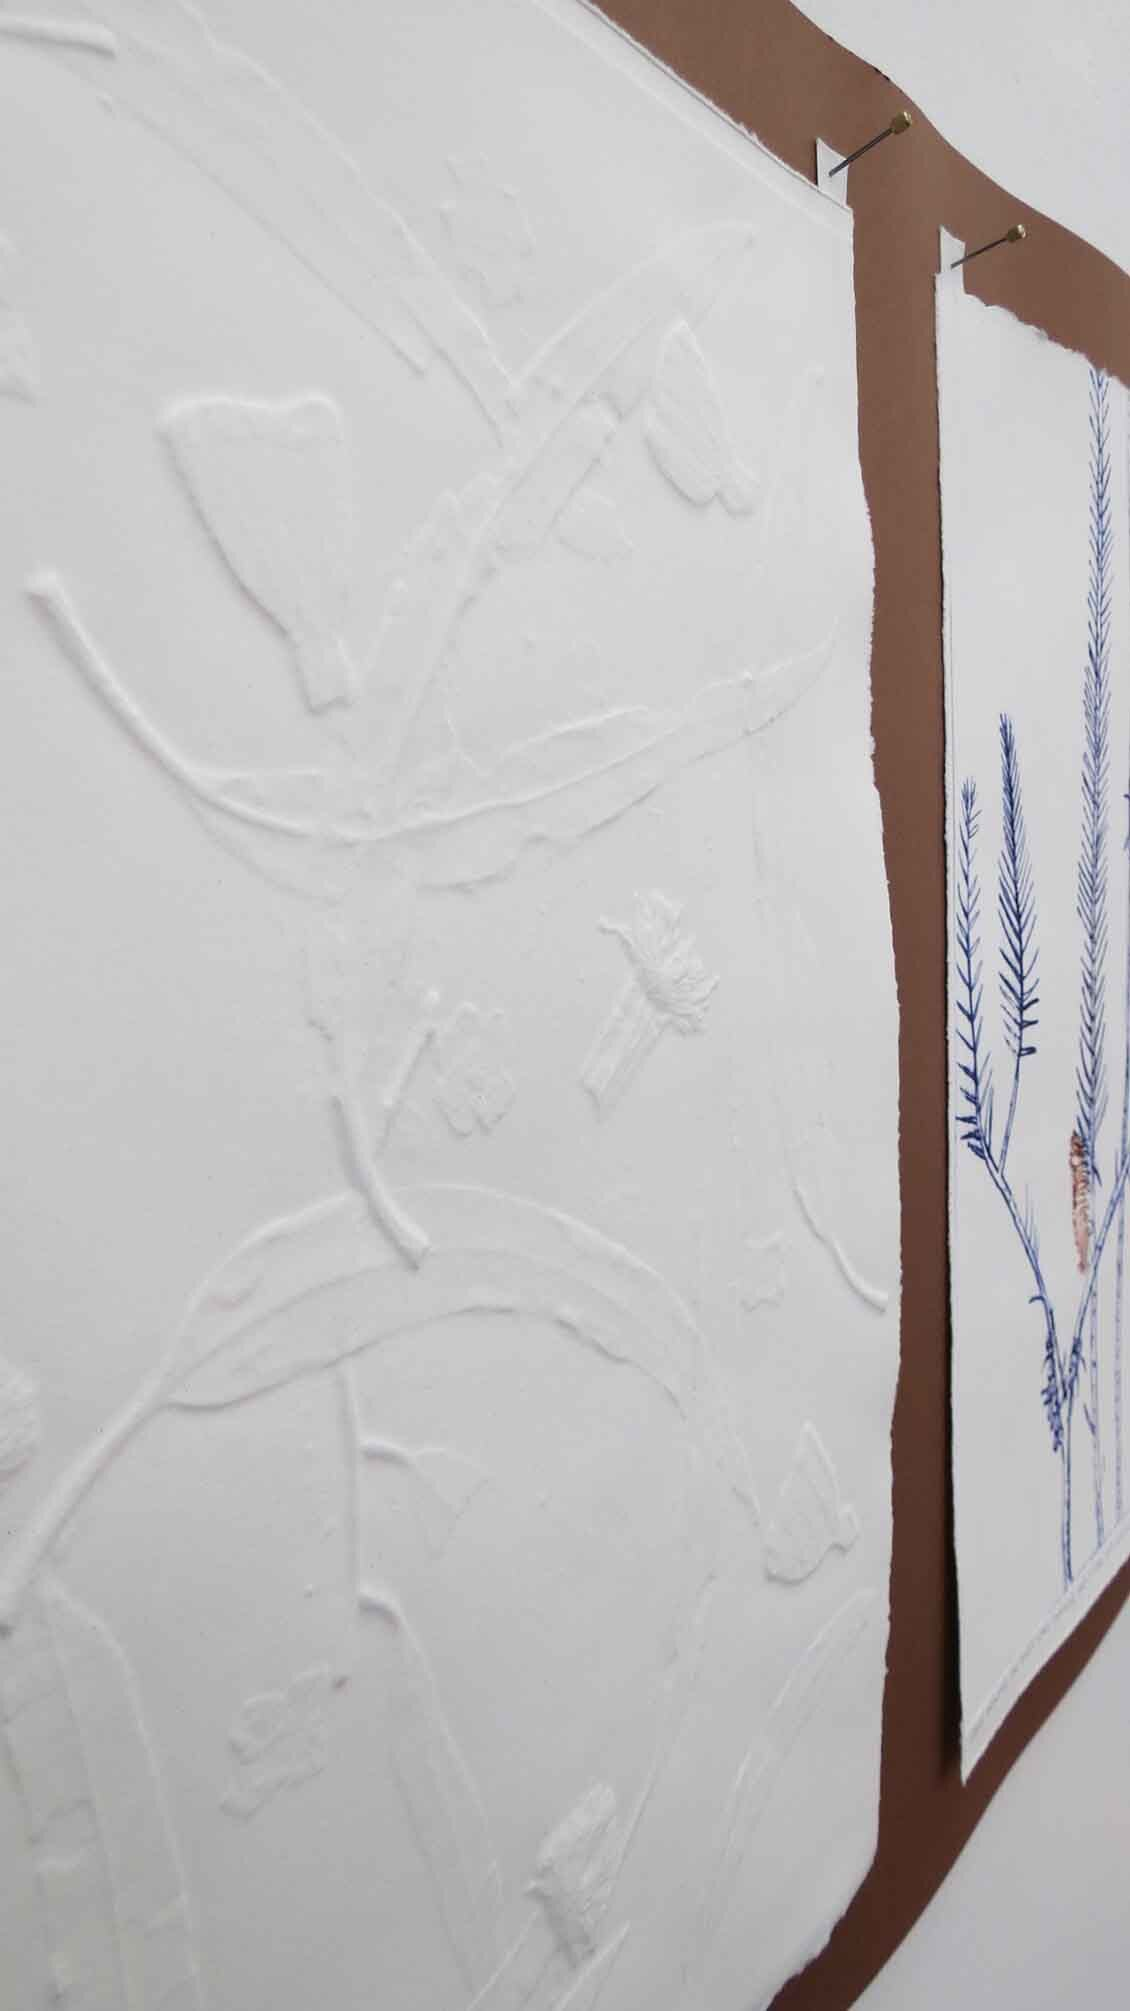 31. Marian Giles, Beneath the Illyarrie I detail